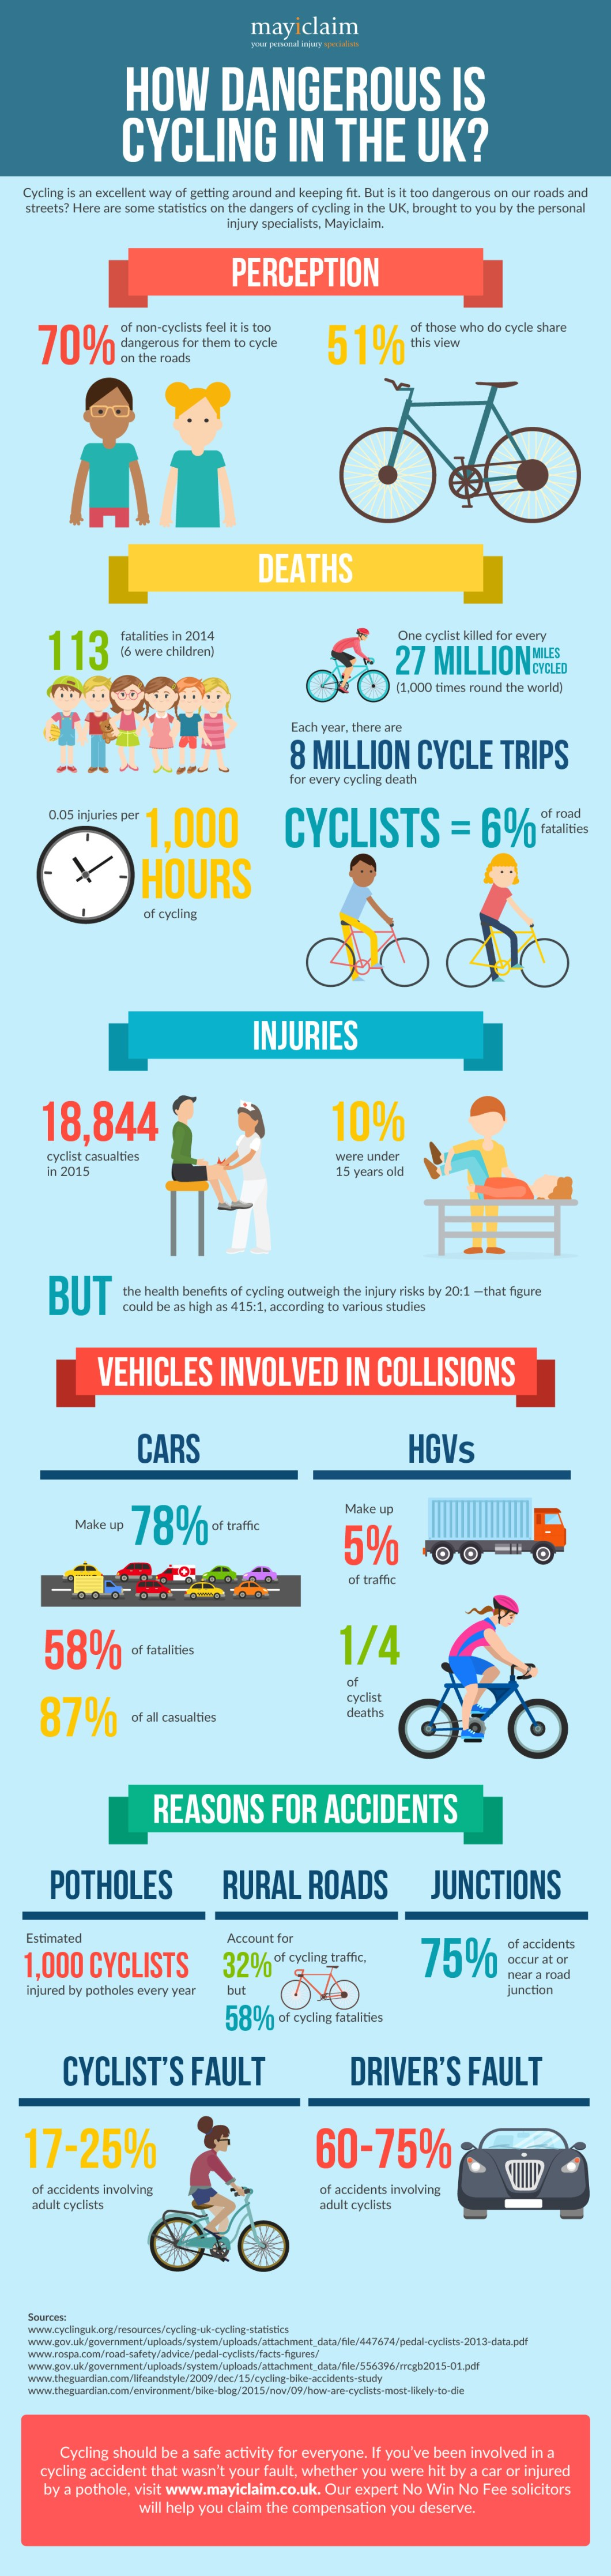 Why Is It Dangerous To Cycle In The UK? - Infographic